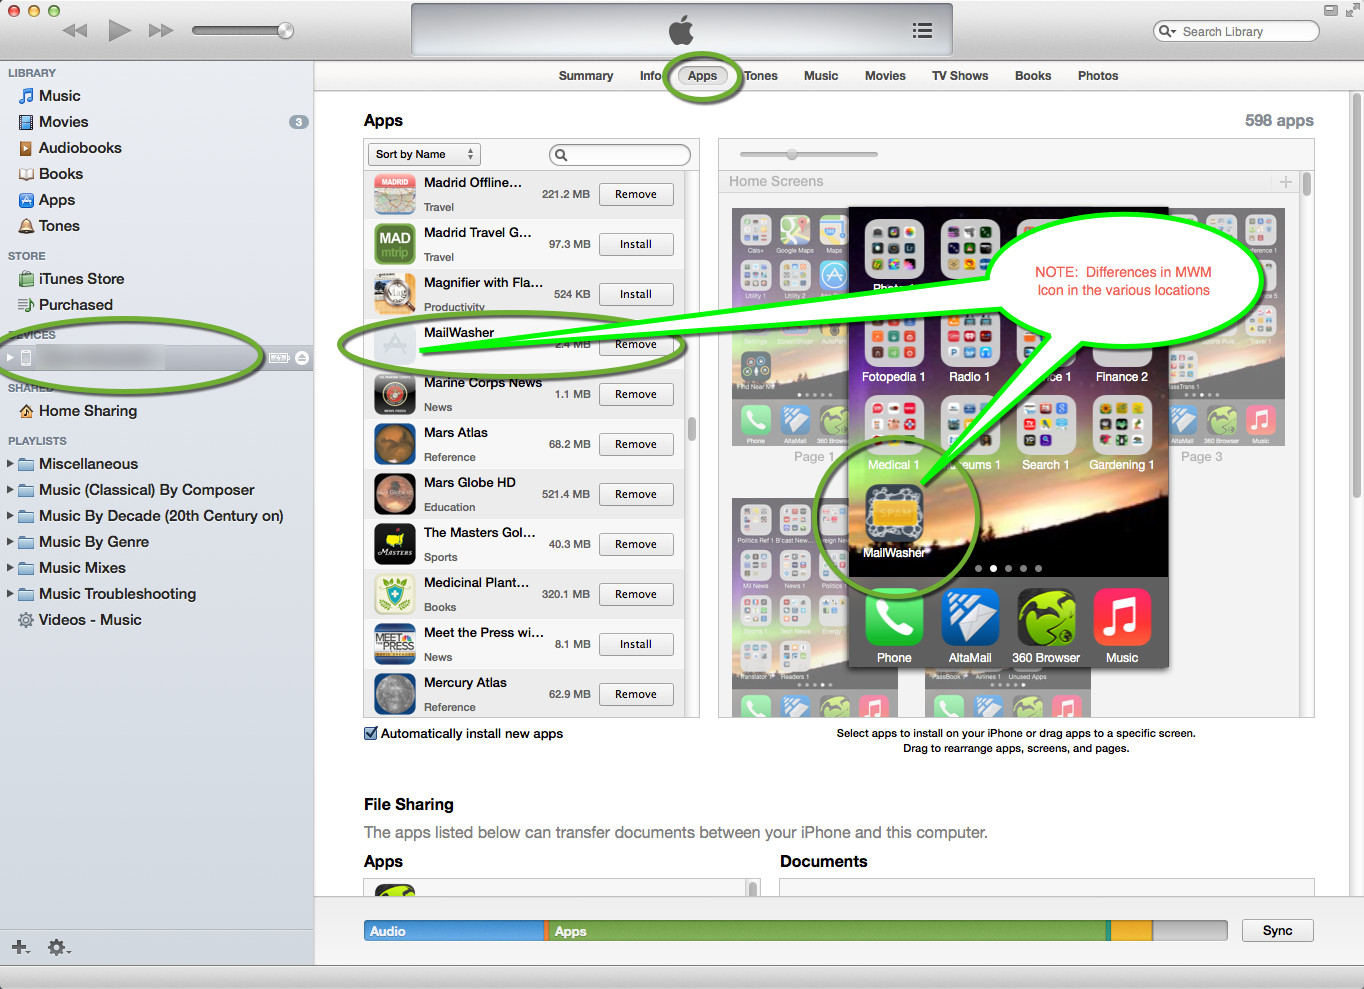 MacOSXiTunes_Devices-Apps_InconsistentMissingMWMIconImageInVariousLists.png